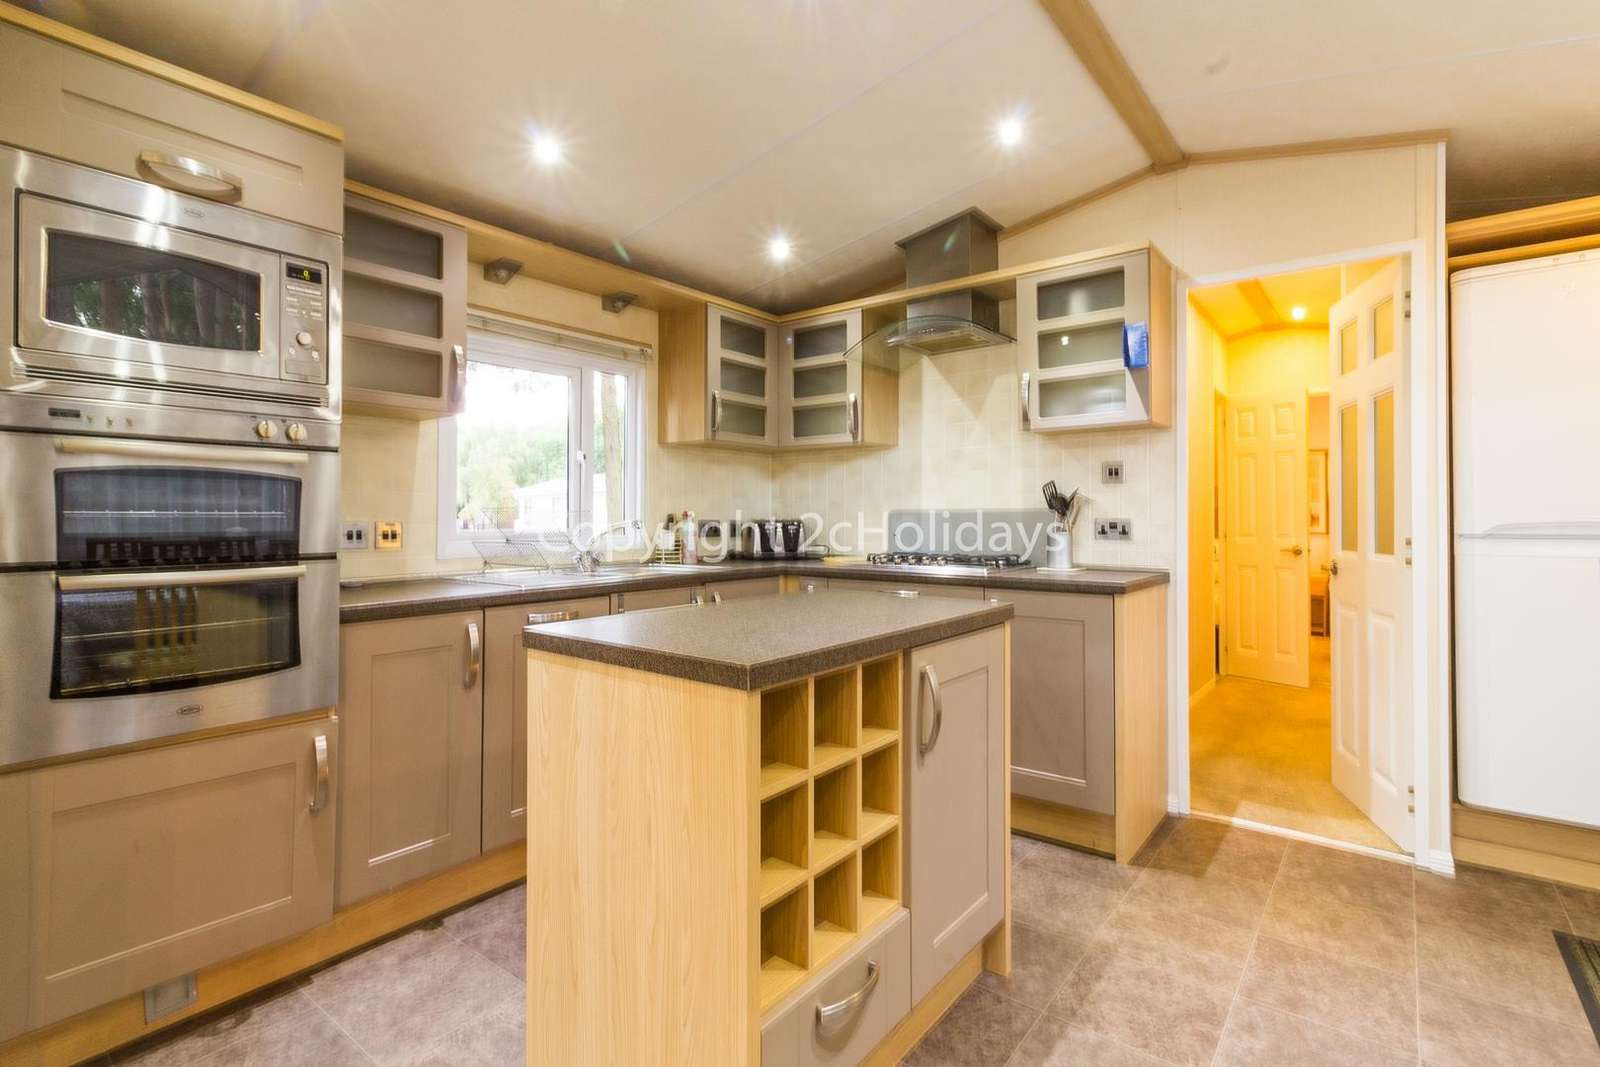 This kitchen includes a double oven and a full size fridge/freezer!